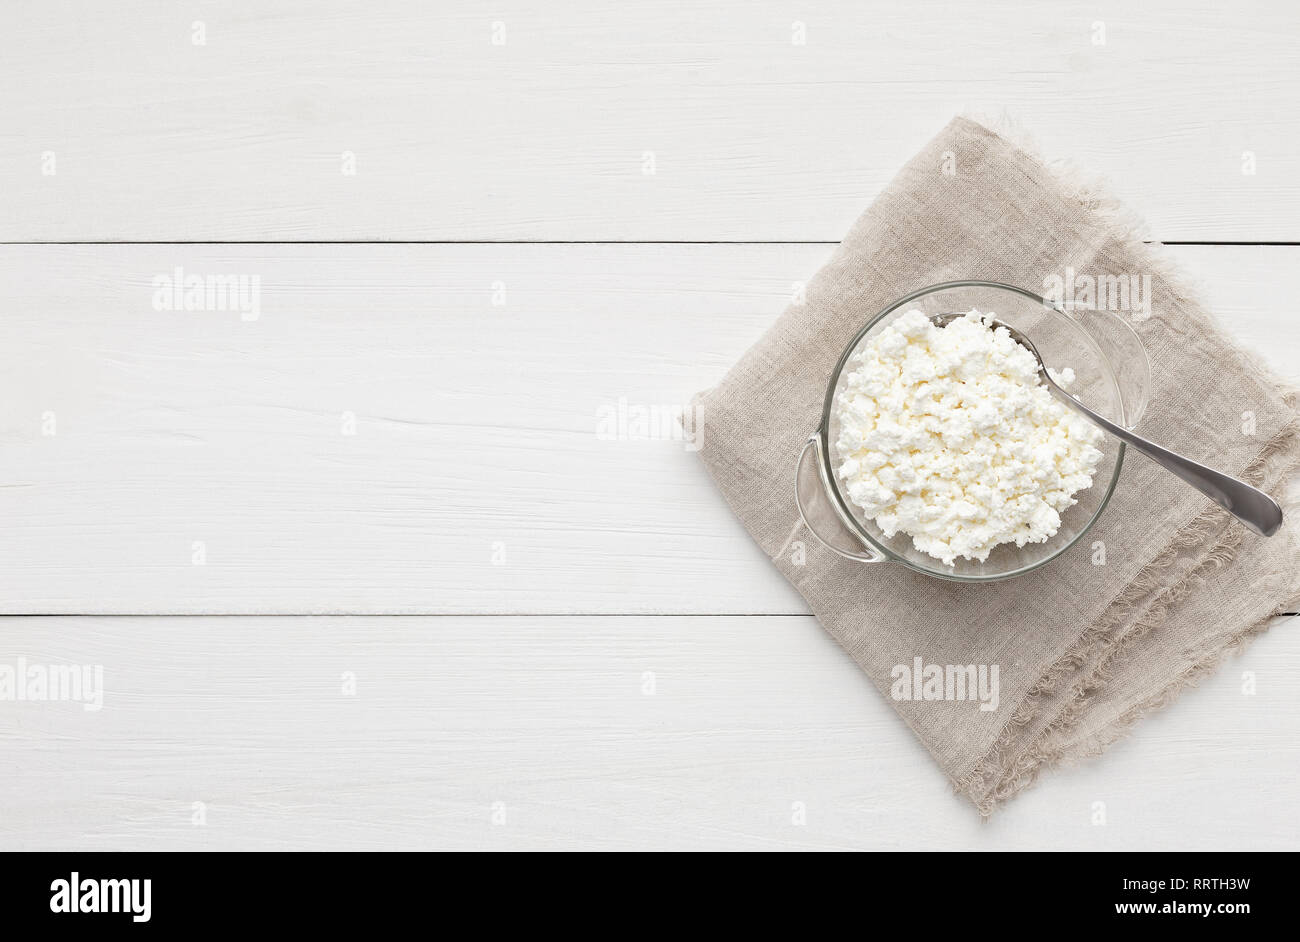 Bowl of cottage cheese - Stock Image